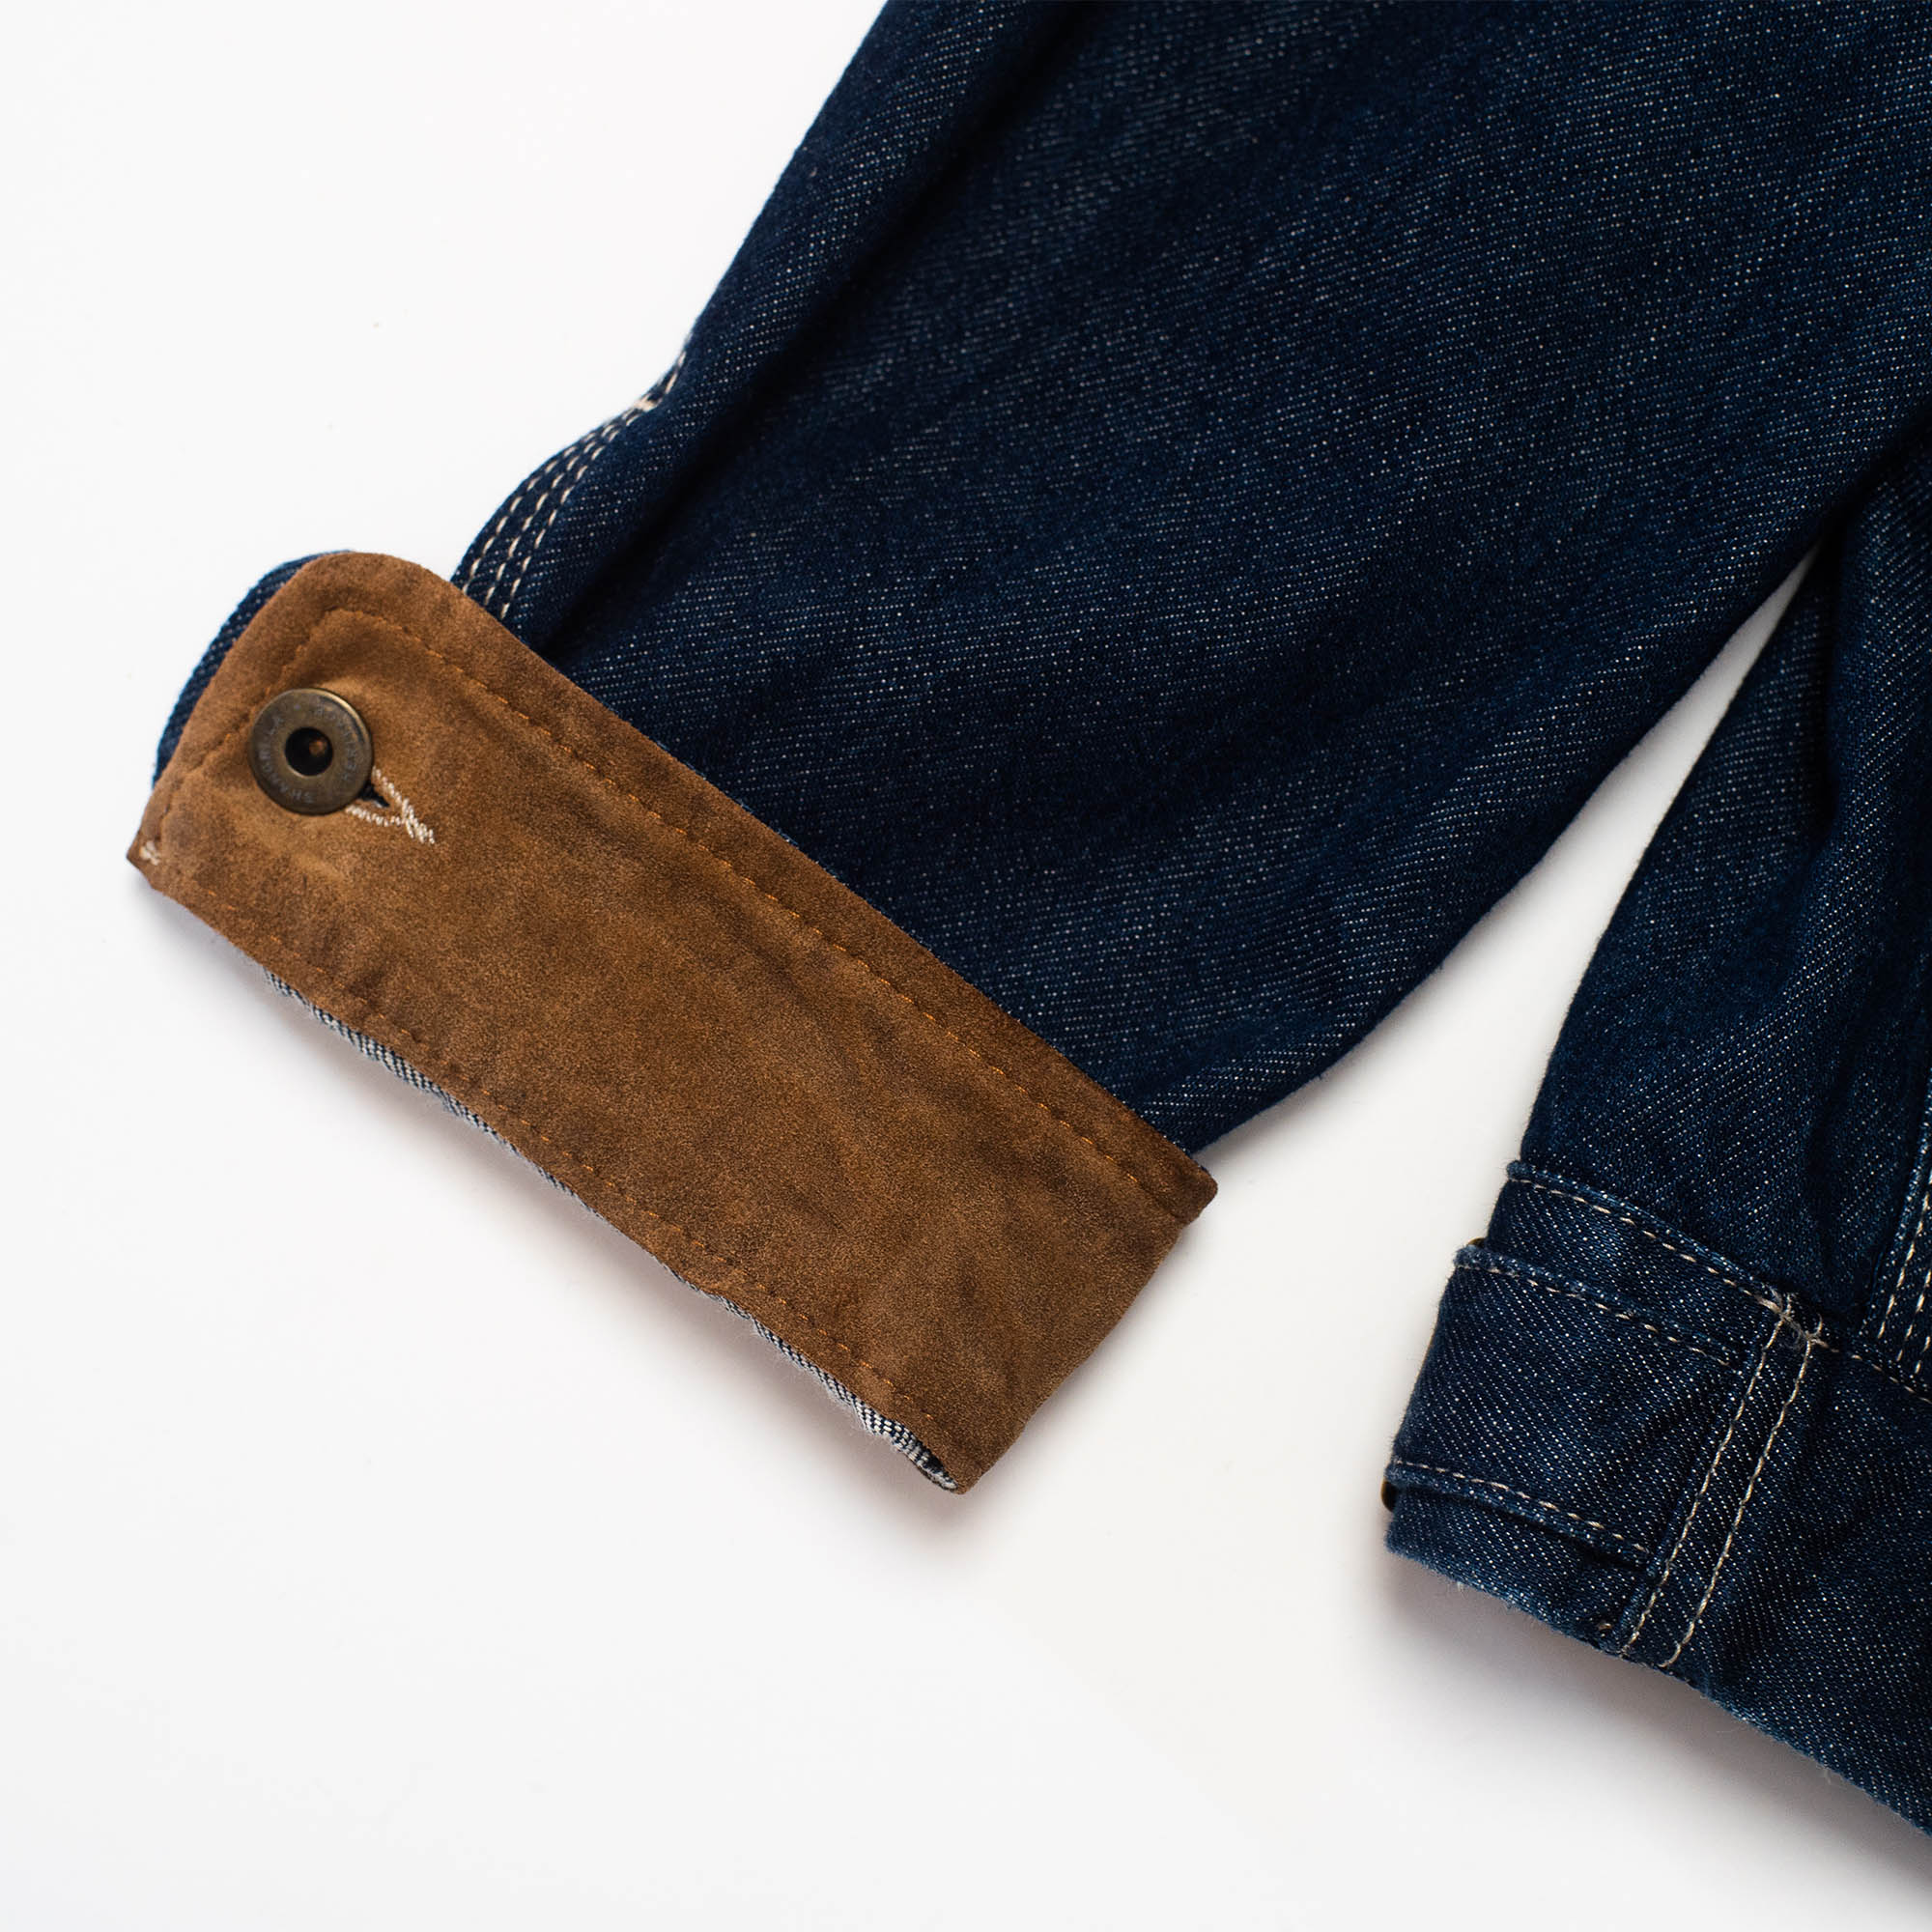 shangri-la-heritage-varenne-ranch-selvedge-candiani-denim-jacket-still-life-sleeve